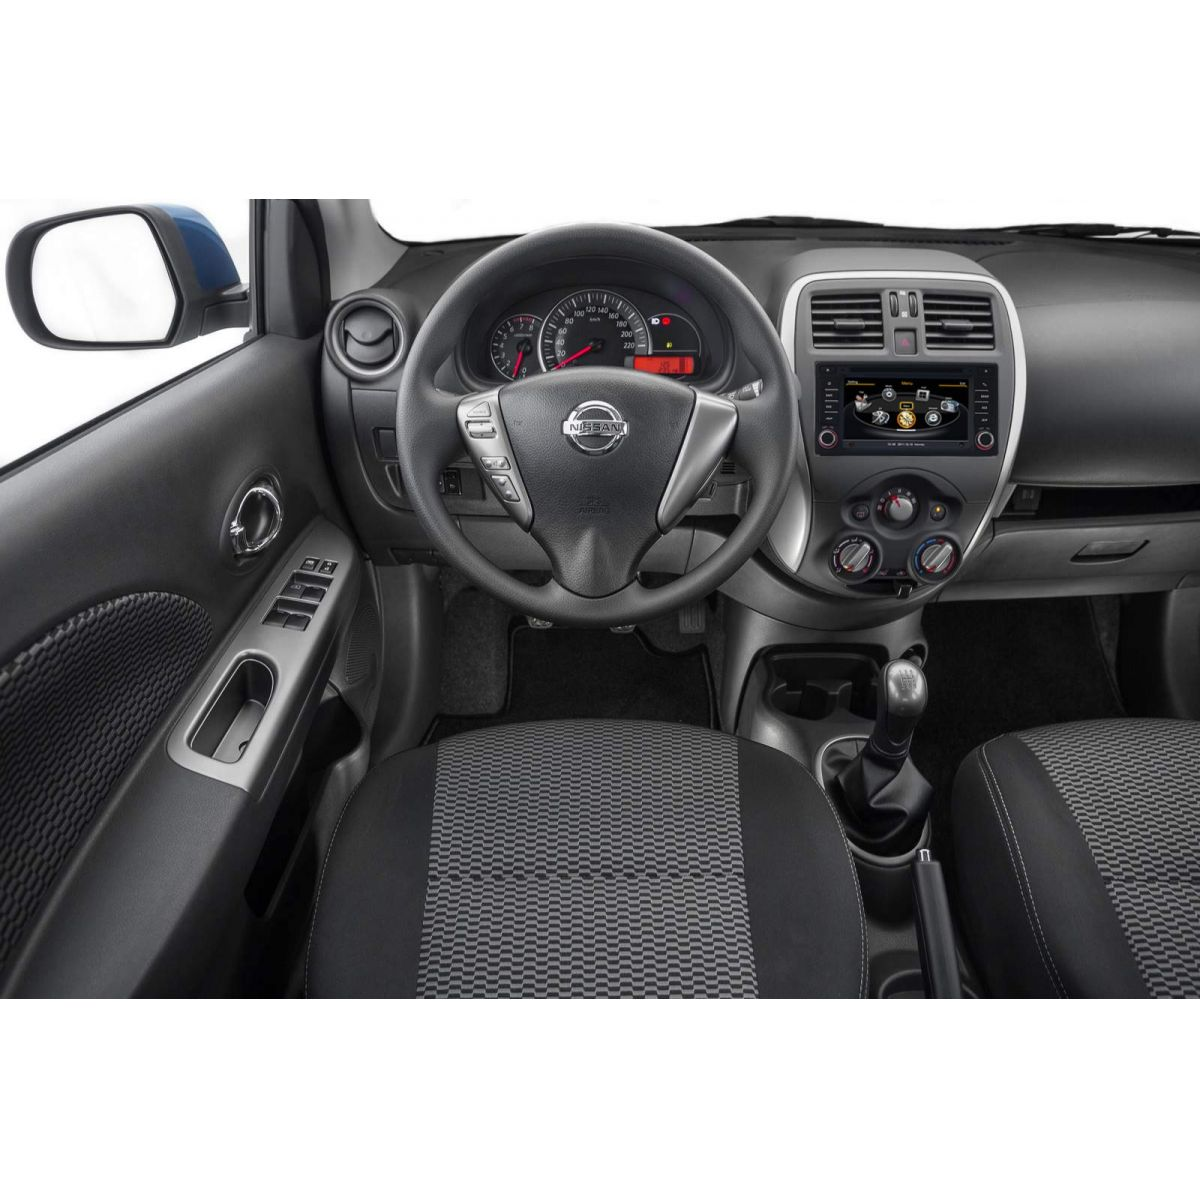 Central Multimidia Nissan March 2014 á 2016   e  Versa 2015 2016 2017  Com DVD GPS Mapa Bluetooth MP3 USB Ipod SD Card Câmera Ré Grátis - Preta - Winca